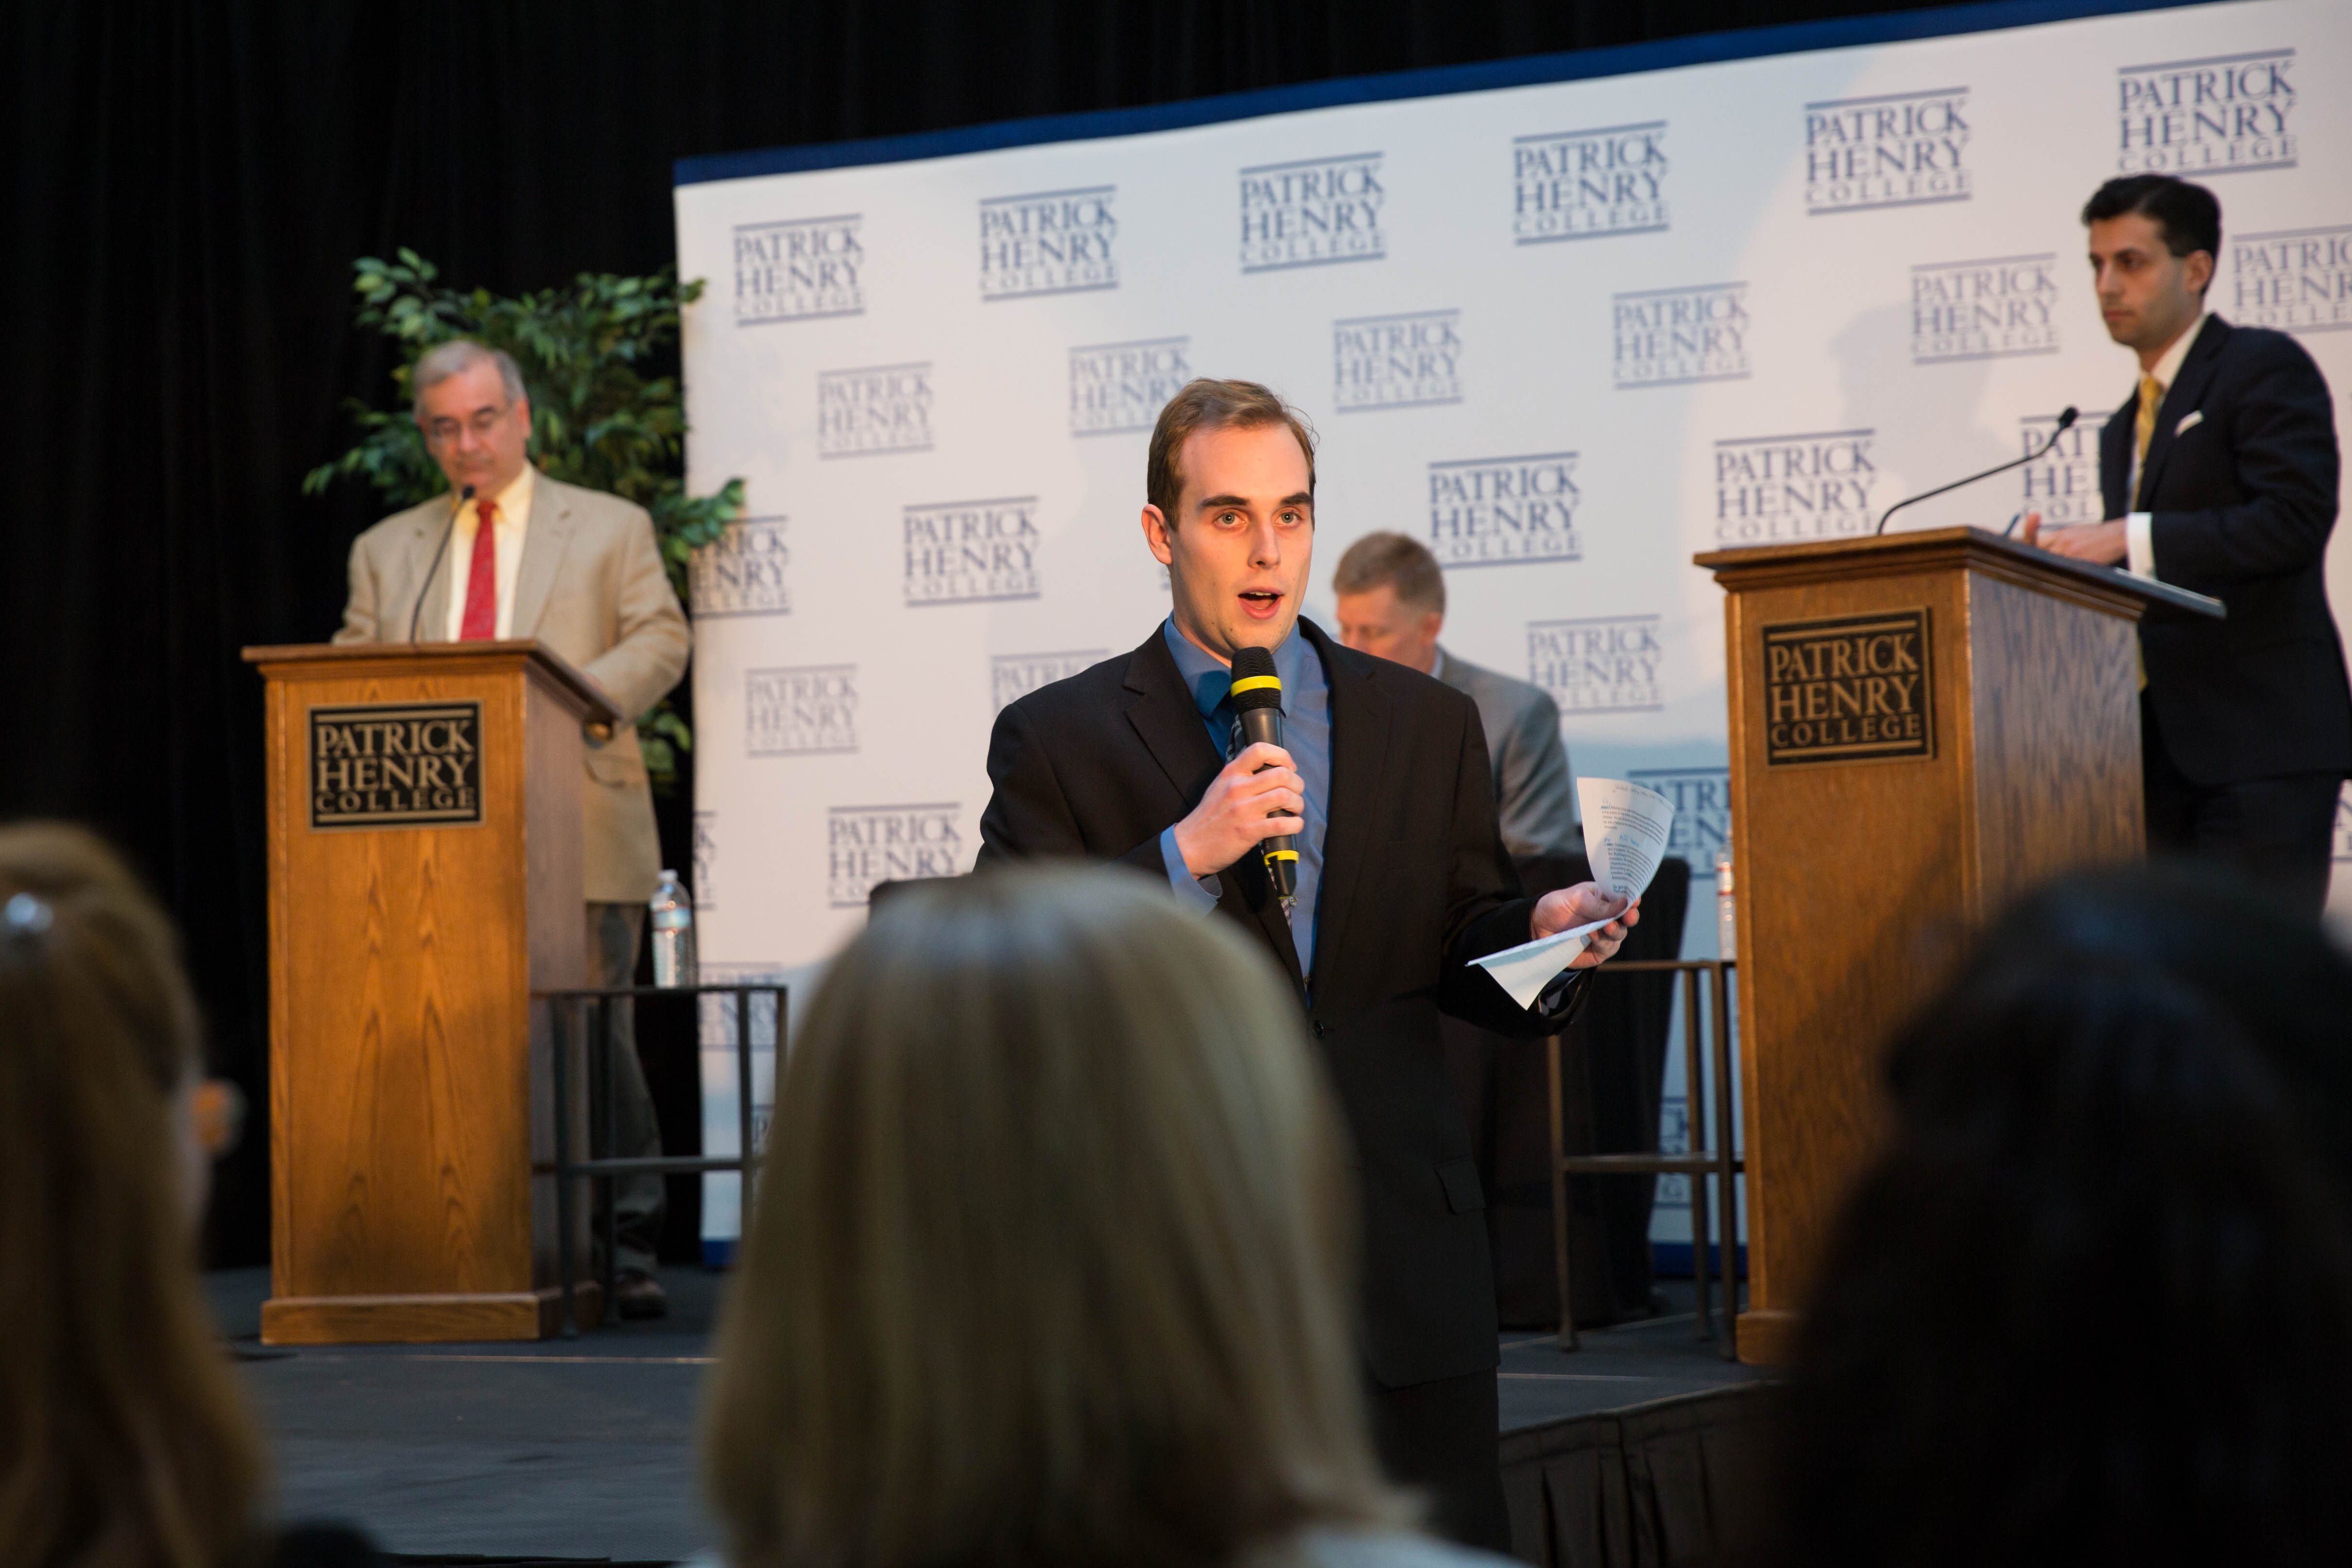 Debate on Immigration and national security millenium society 2017-2.jpg